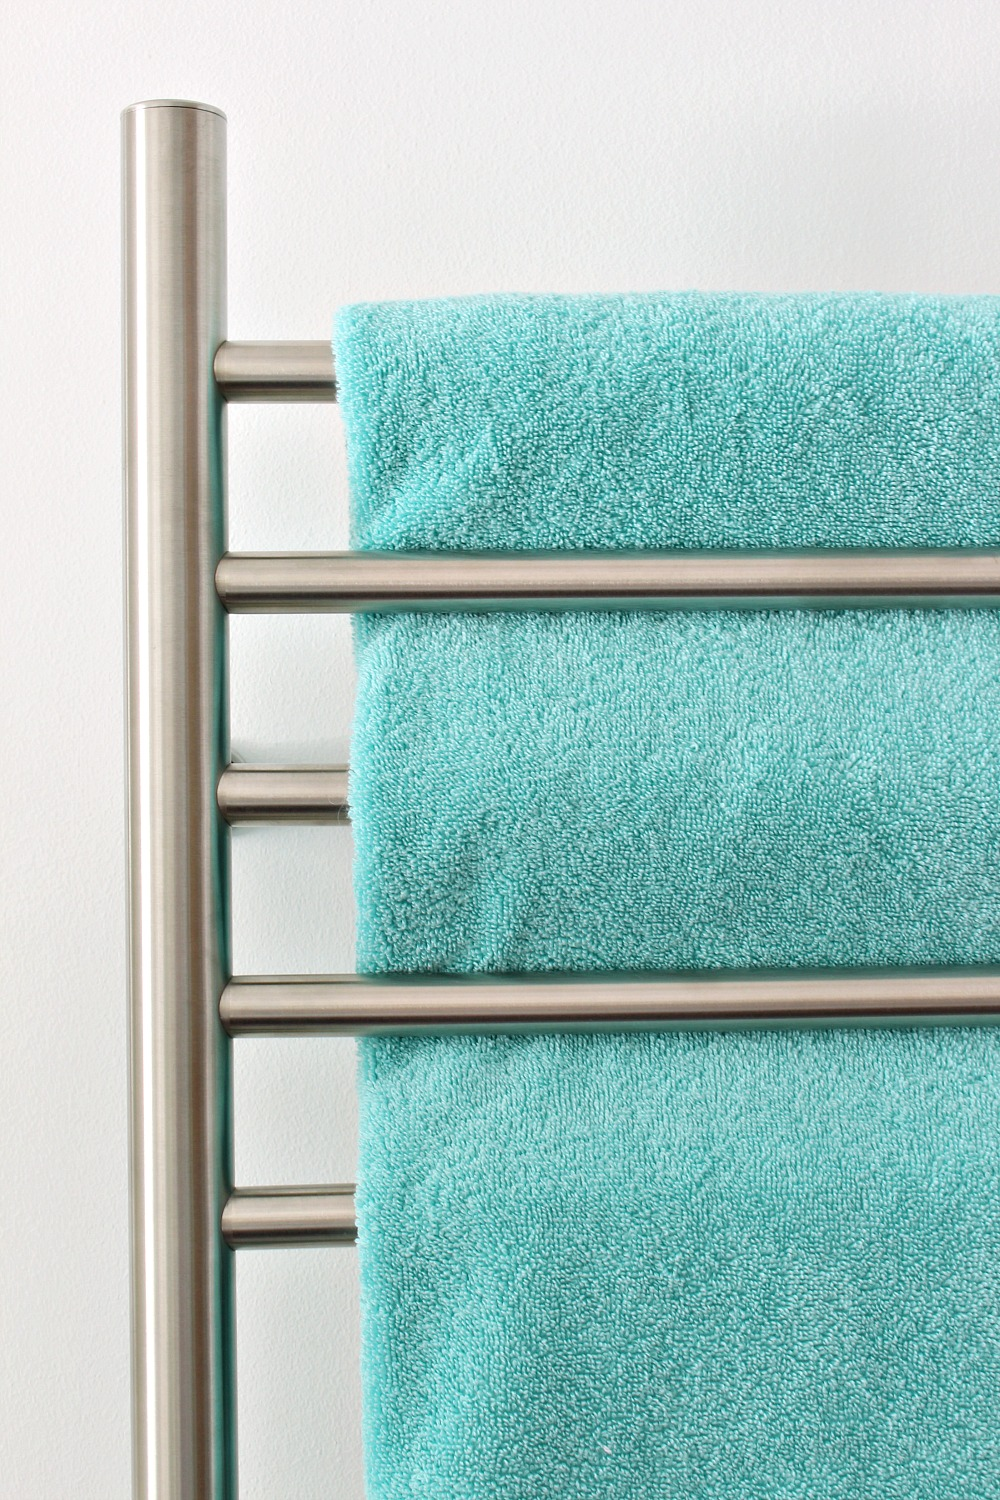 Guide for purchasing a towel warmer - what questions to ask